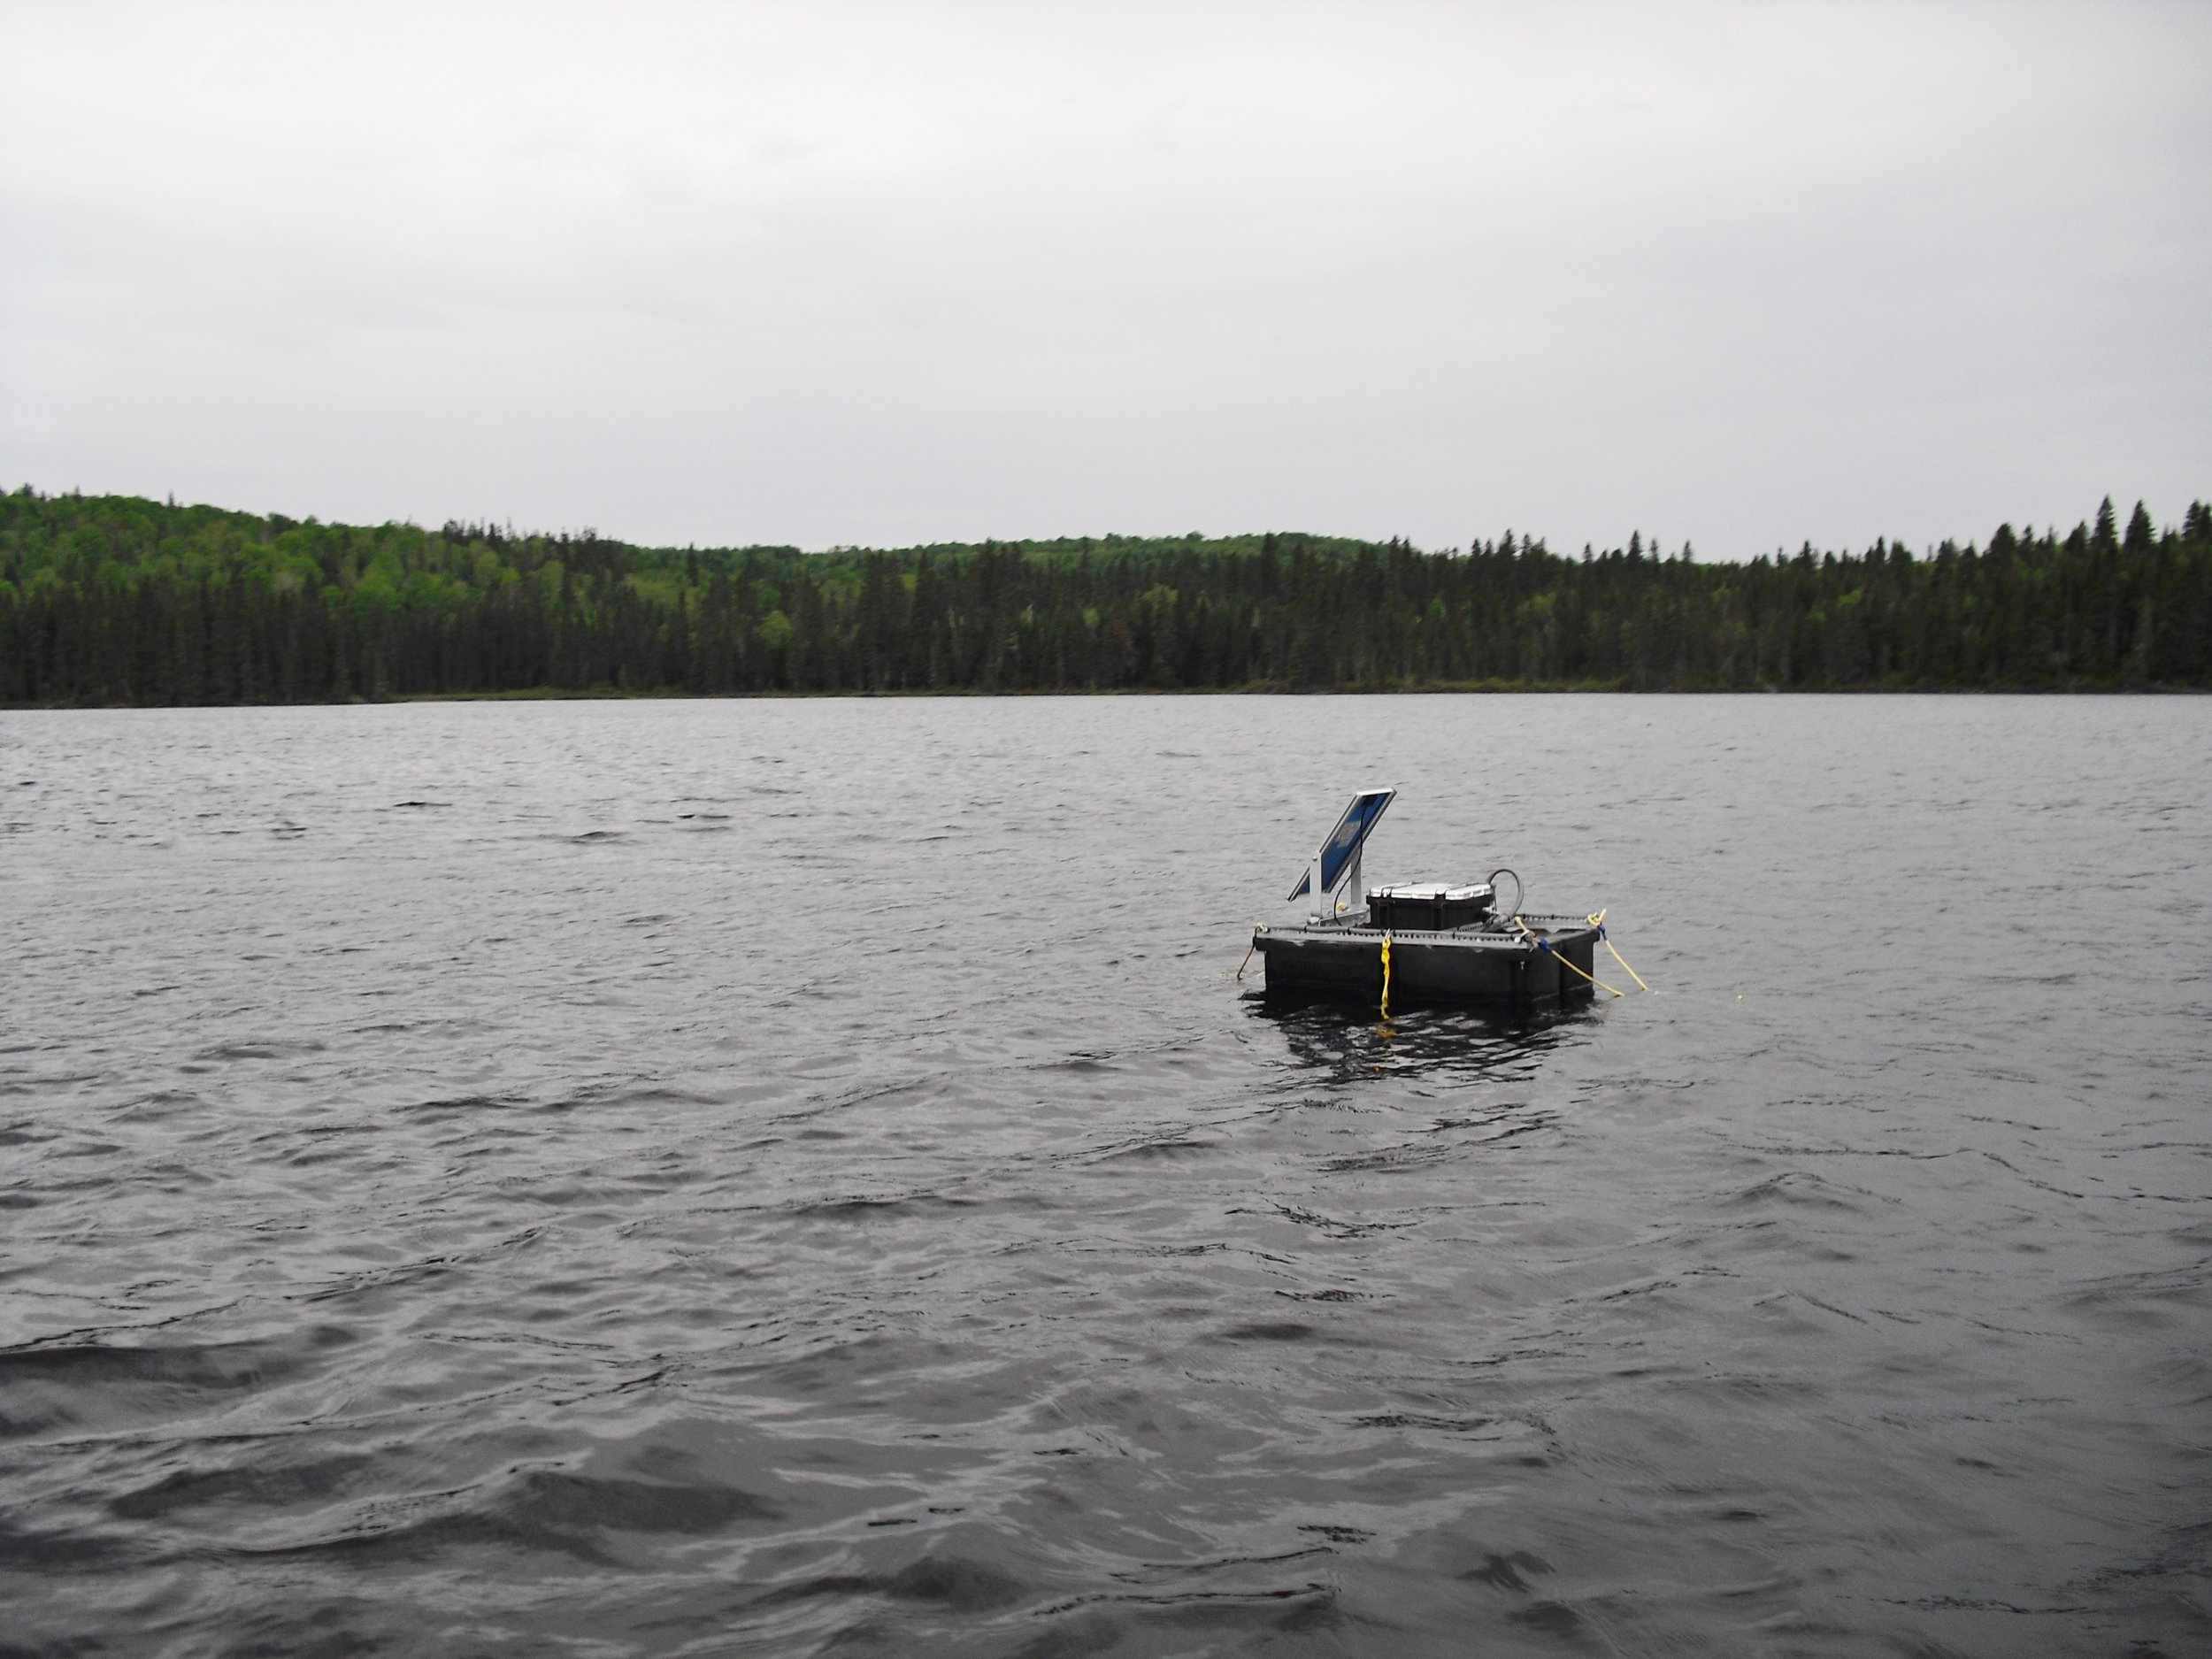 Monitoring_Lake_Simoncouche_by_Dominic_Vachon_on_2011_05_07.JPG